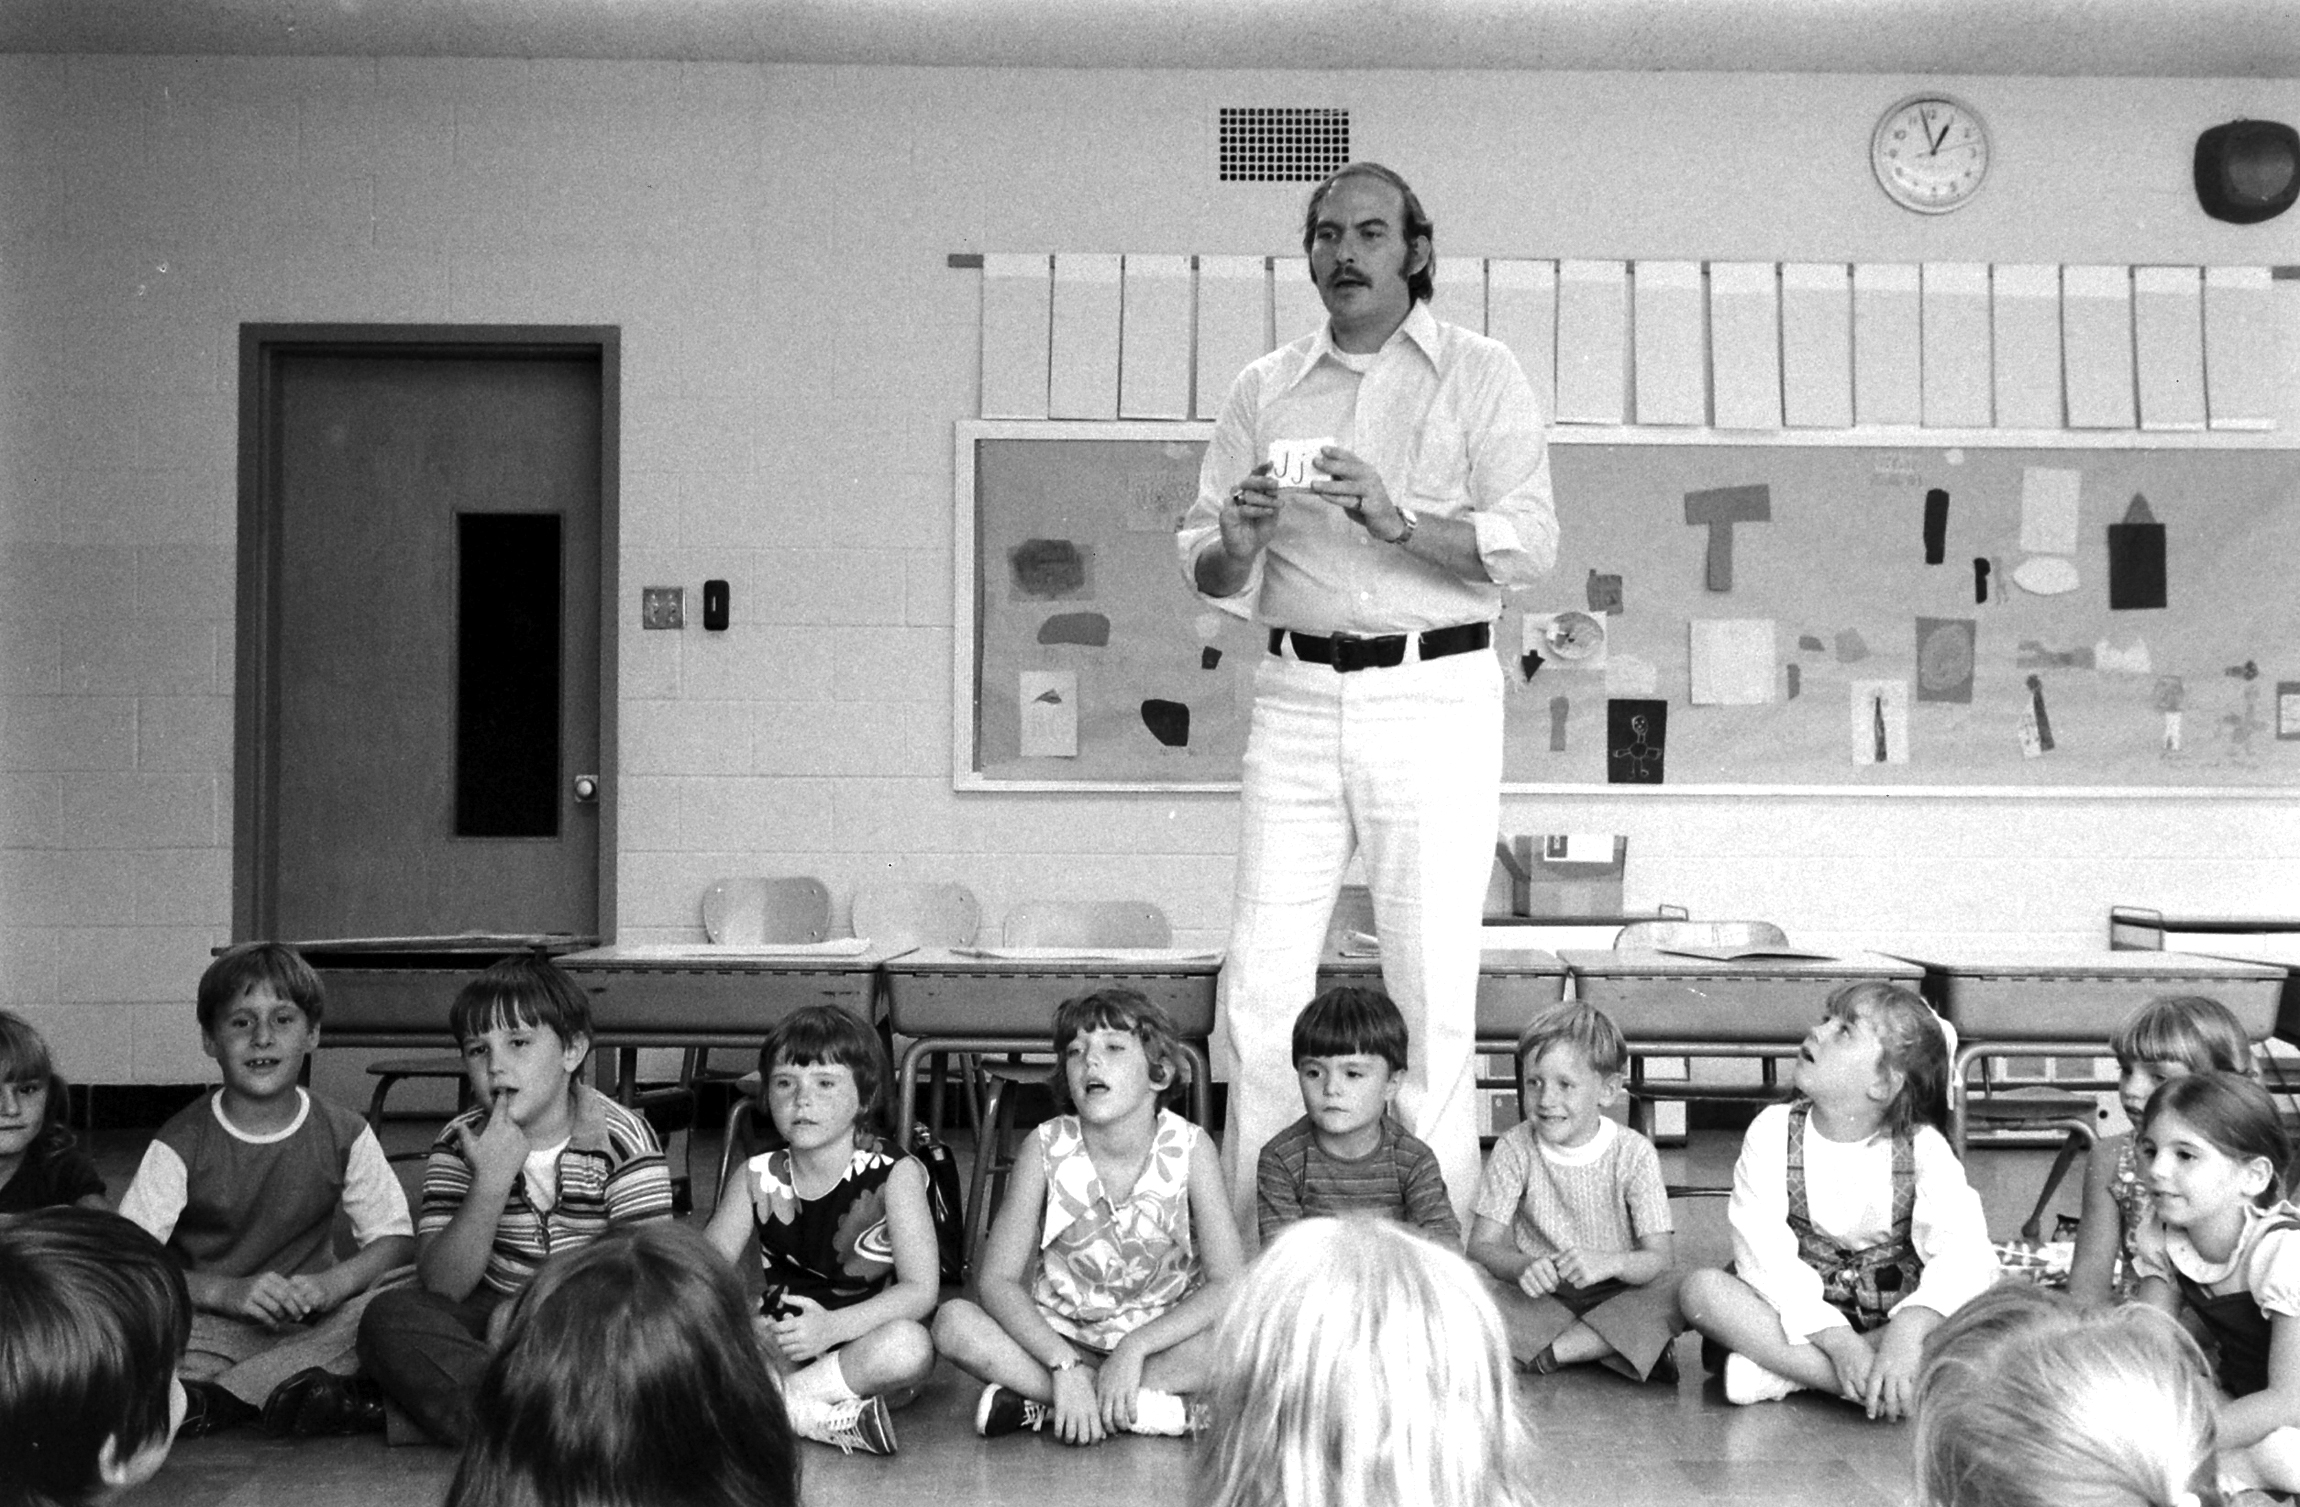 First grade teacher Bill L' Orange with his students at Calumet School in the Chicago suburbs.